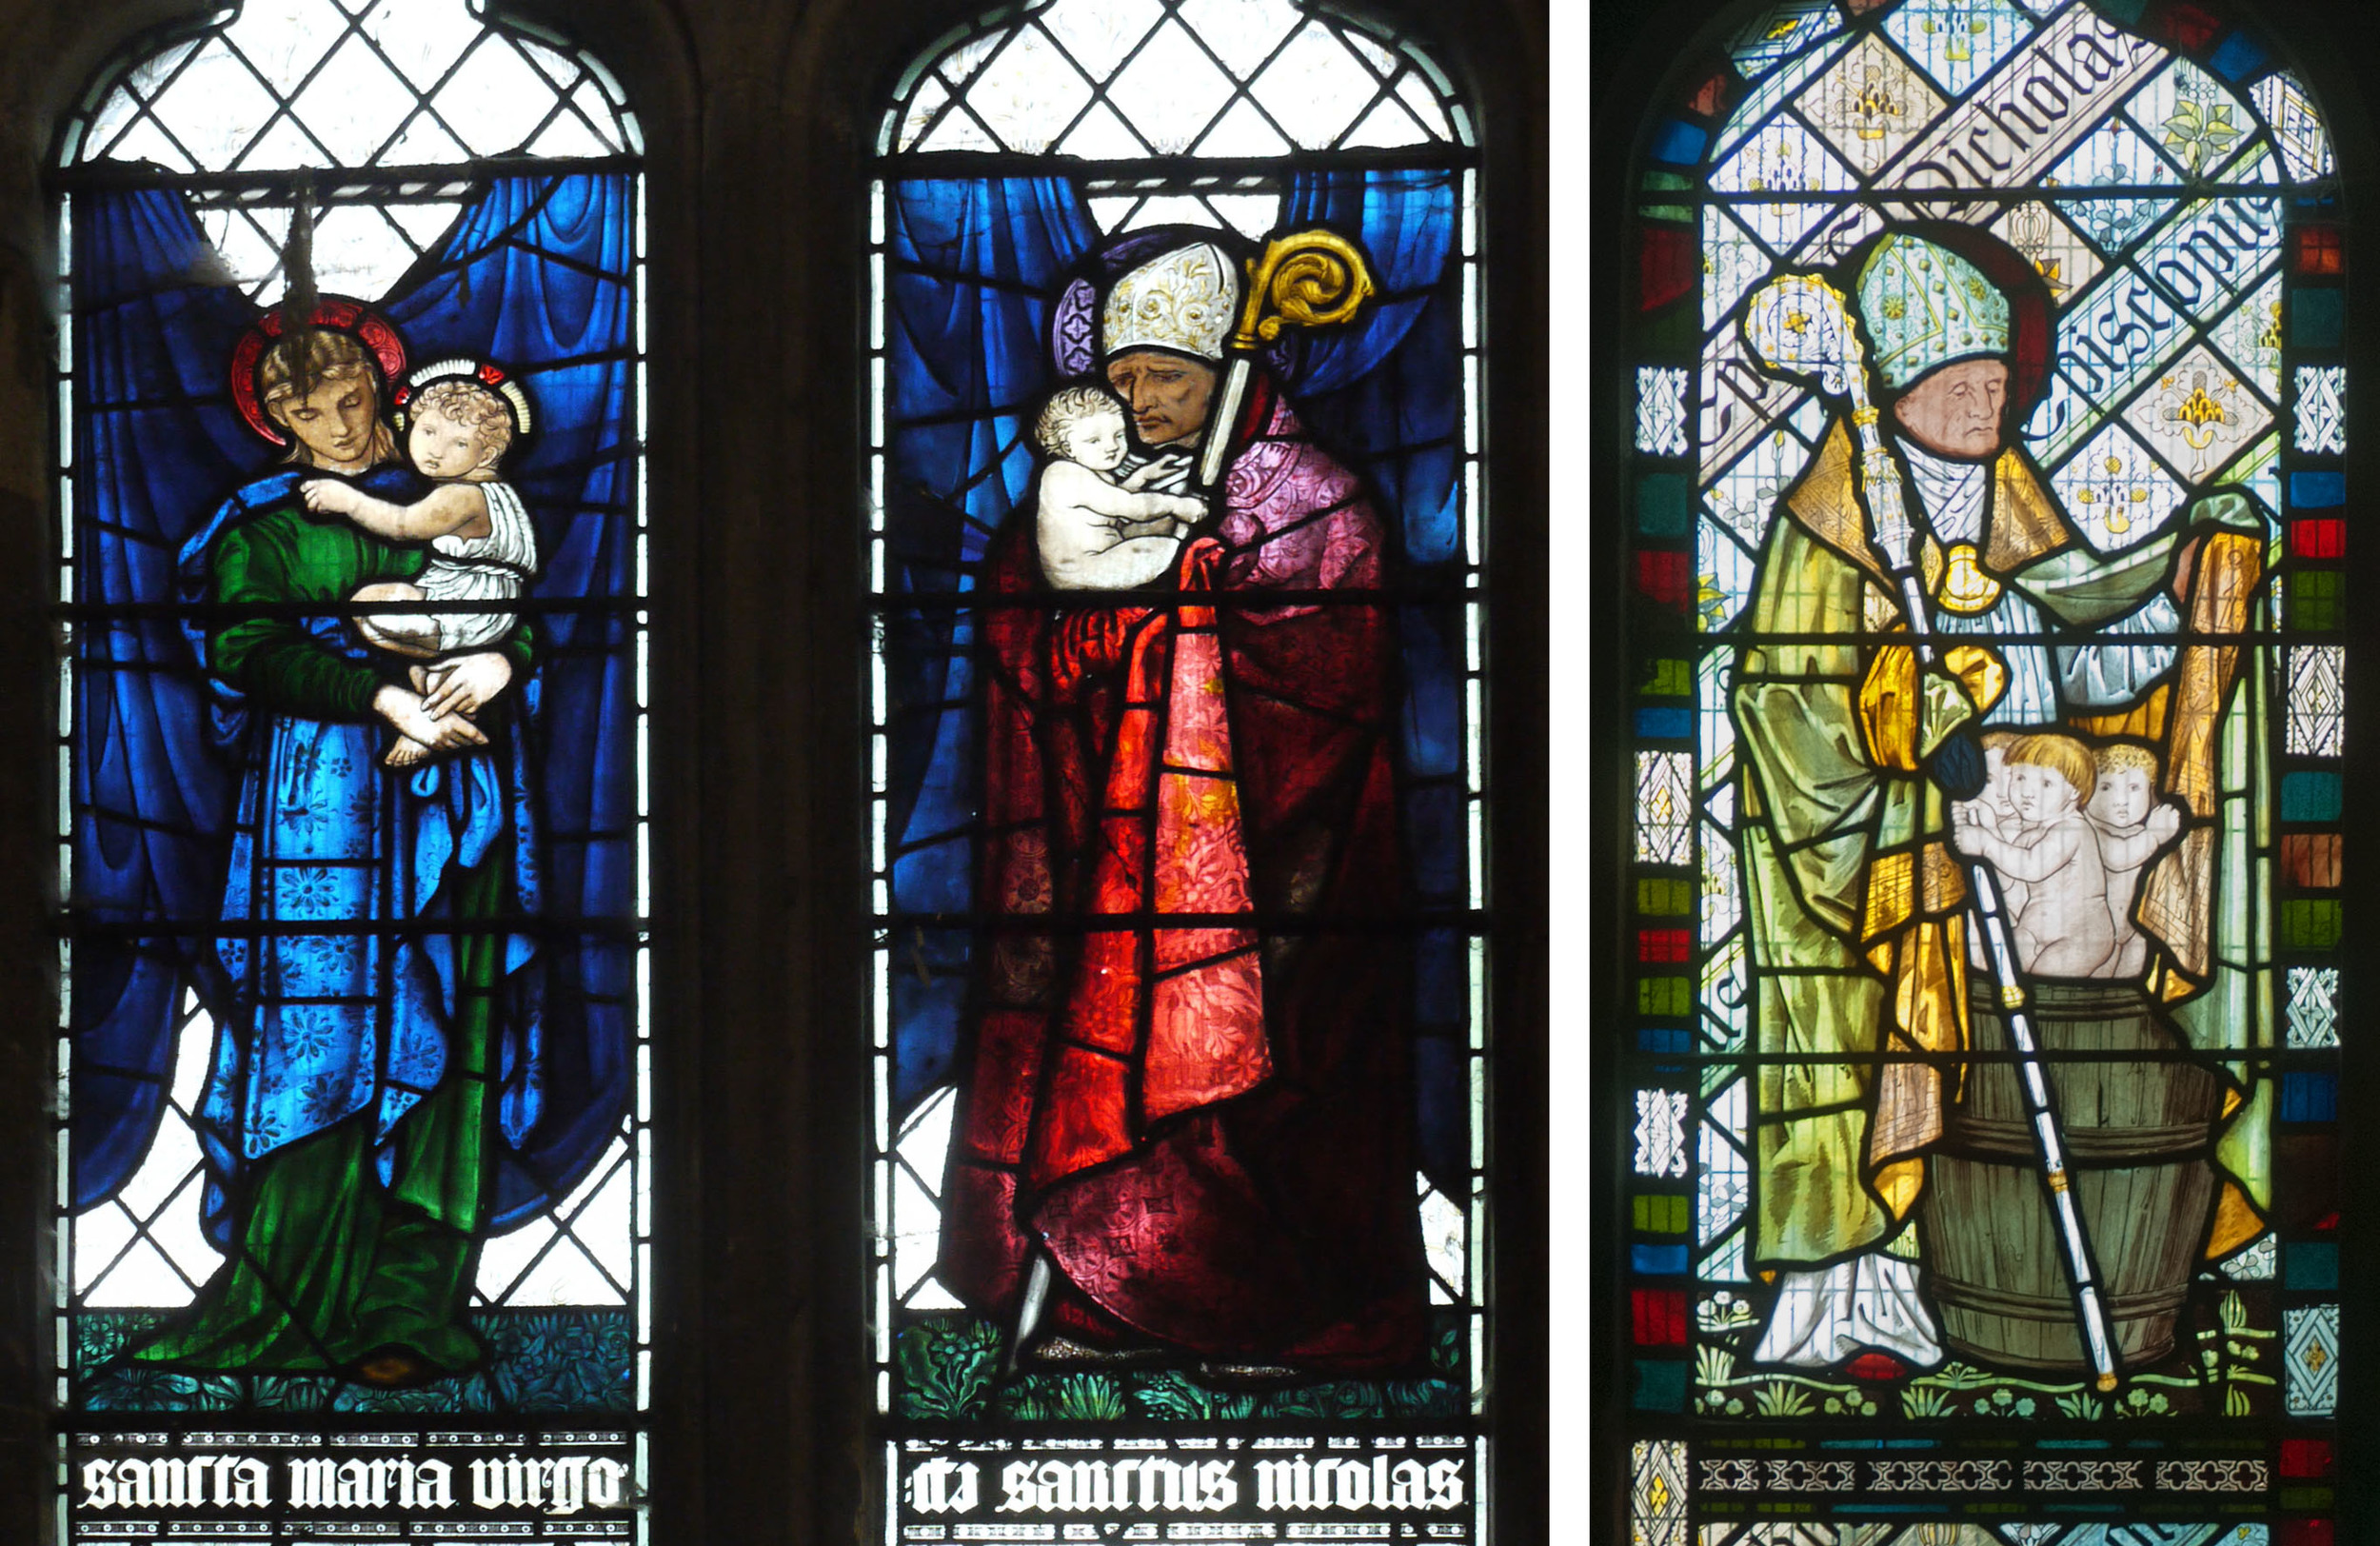 The Virgin Mary and St. Nicholas from Welton Church, EBJ  : An earlier version of St. Nicholas from Beaudesert